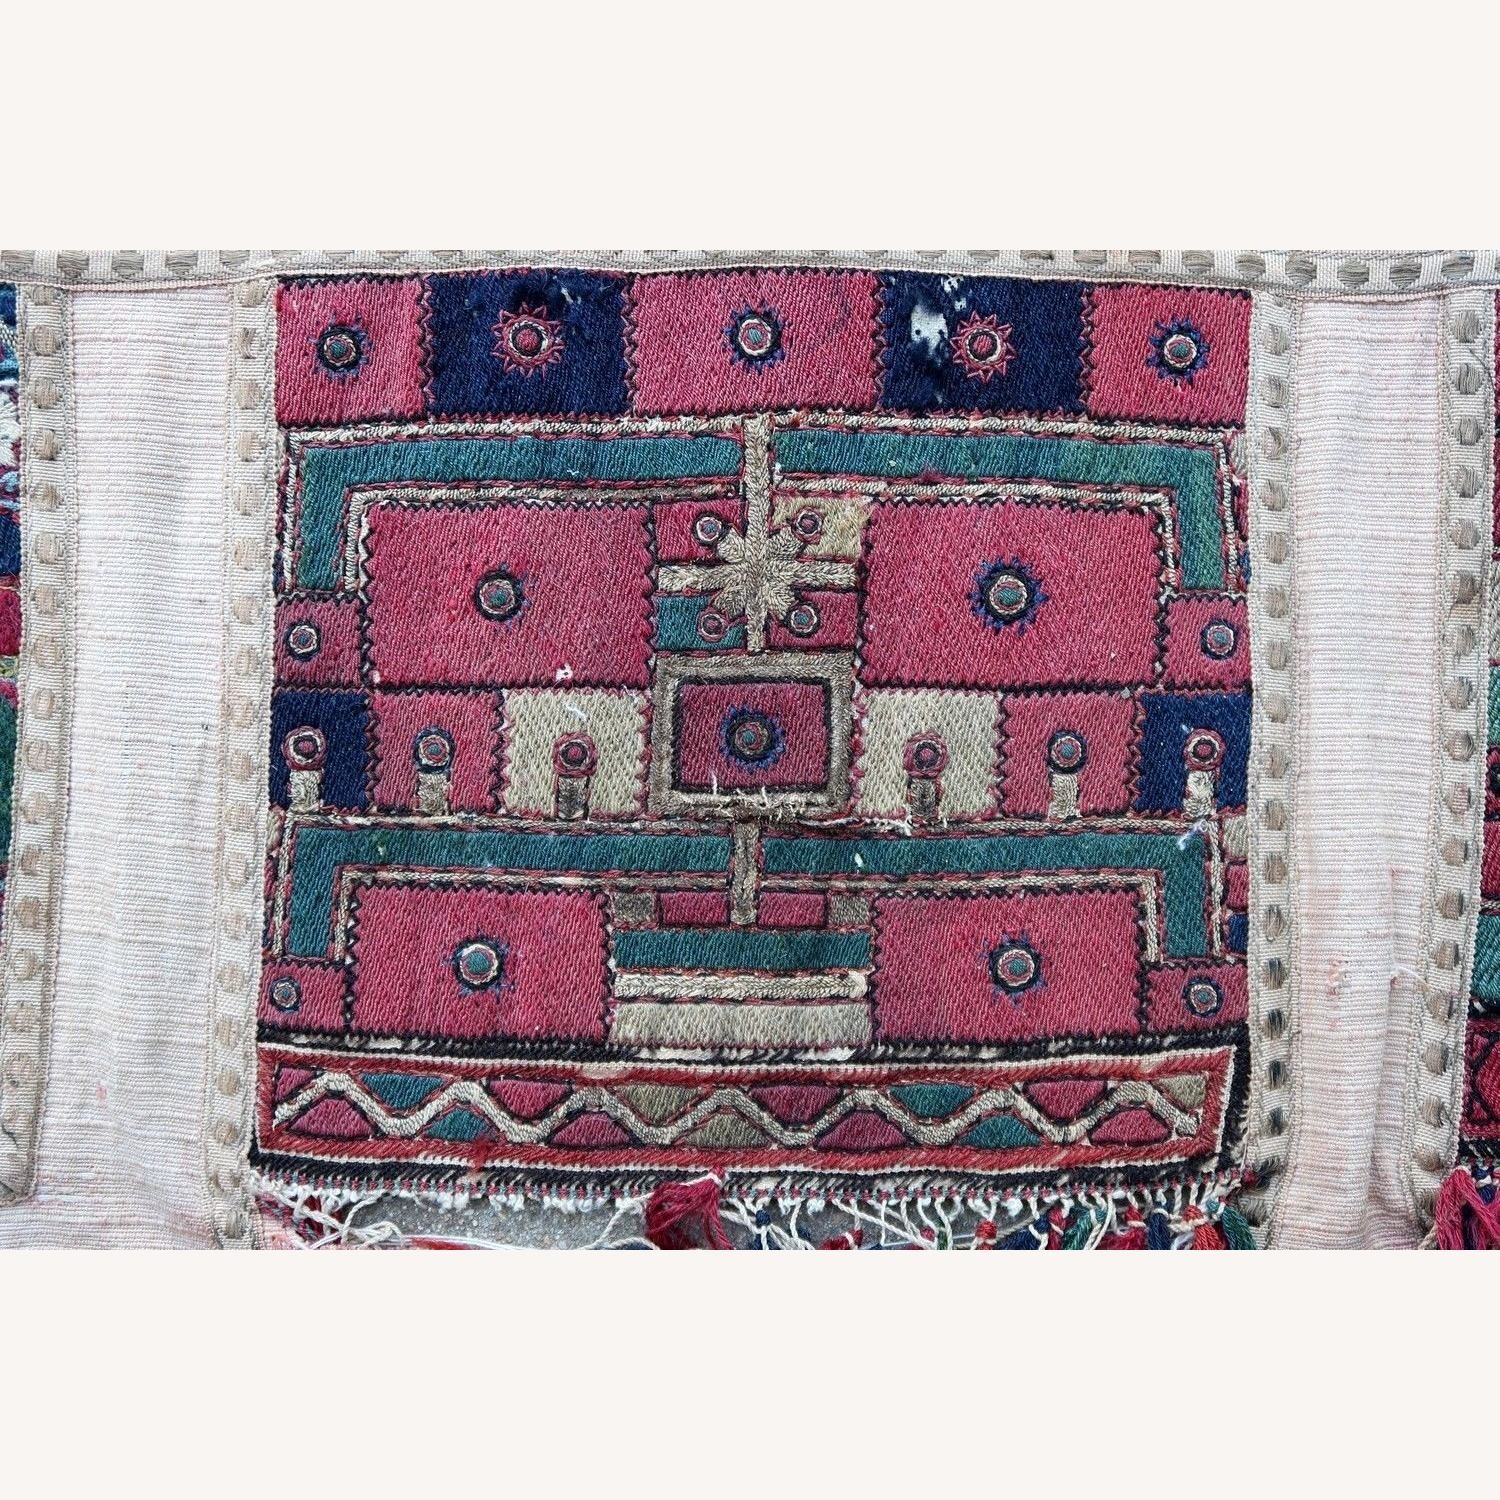 Handmade antique Greek embroidery, 1P87 - image-2